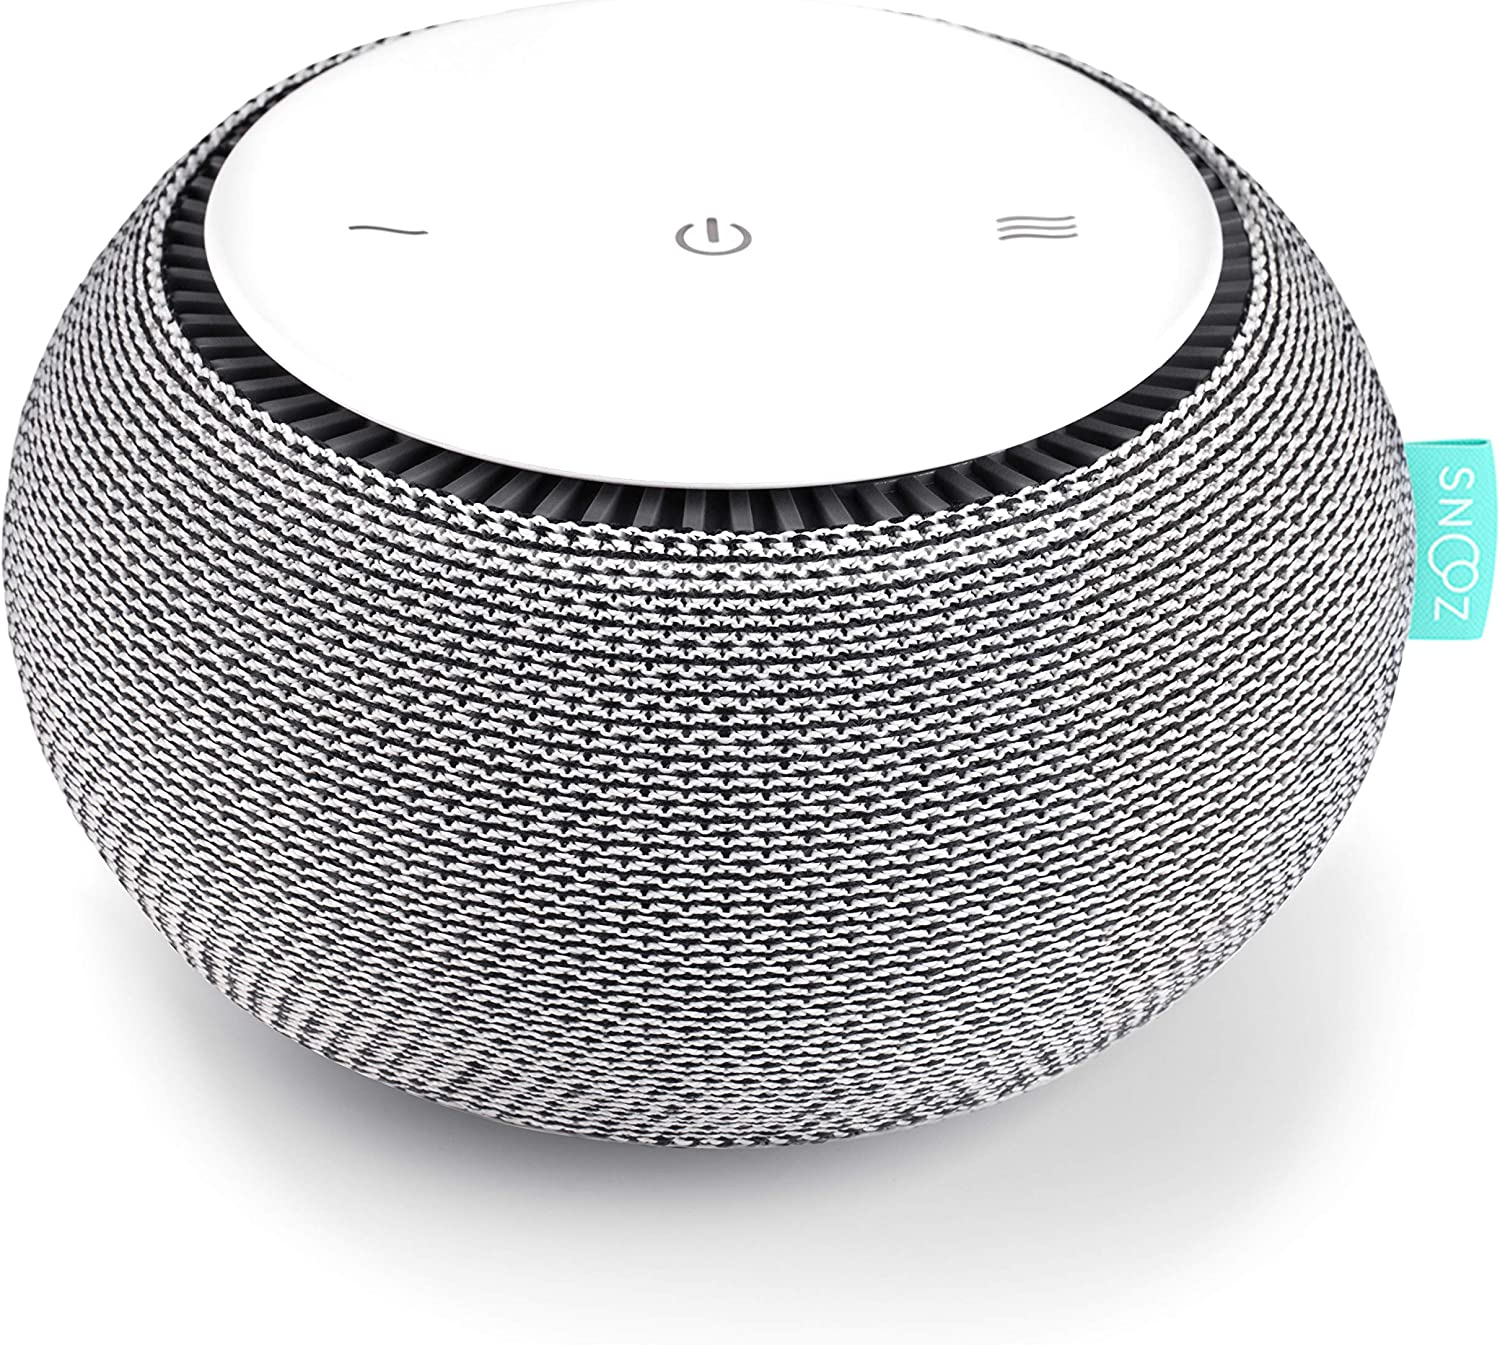 SNOOZ White Noise Sound Machine - Real Fan Inside for Non-Looping White Noise Sounds - App-Based Remote Control, Sleep Timer, and Night Light - Cloud